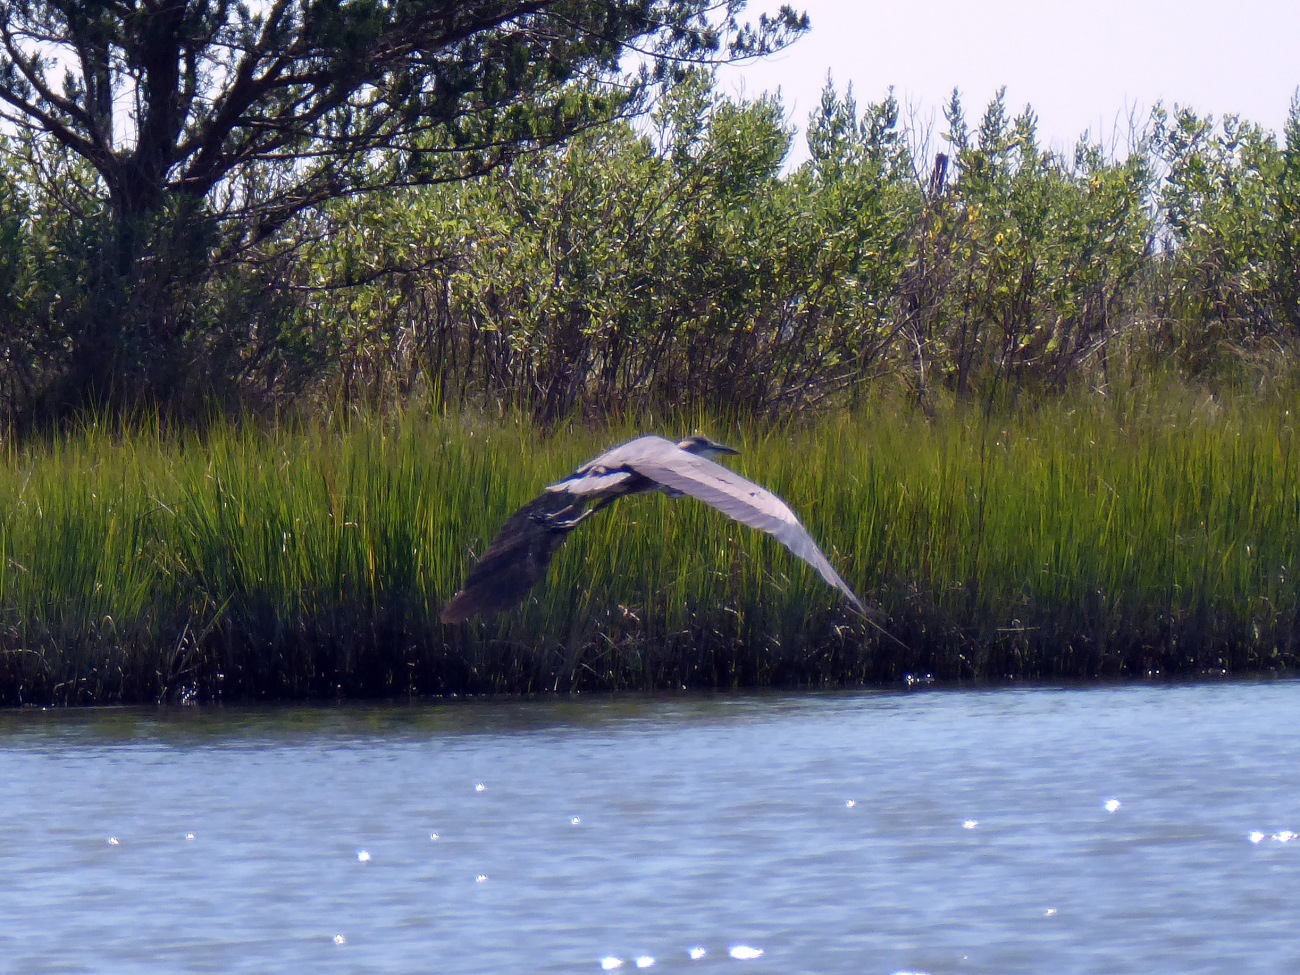 20170806_120055_Tri-Colored Heron in flight - Copy